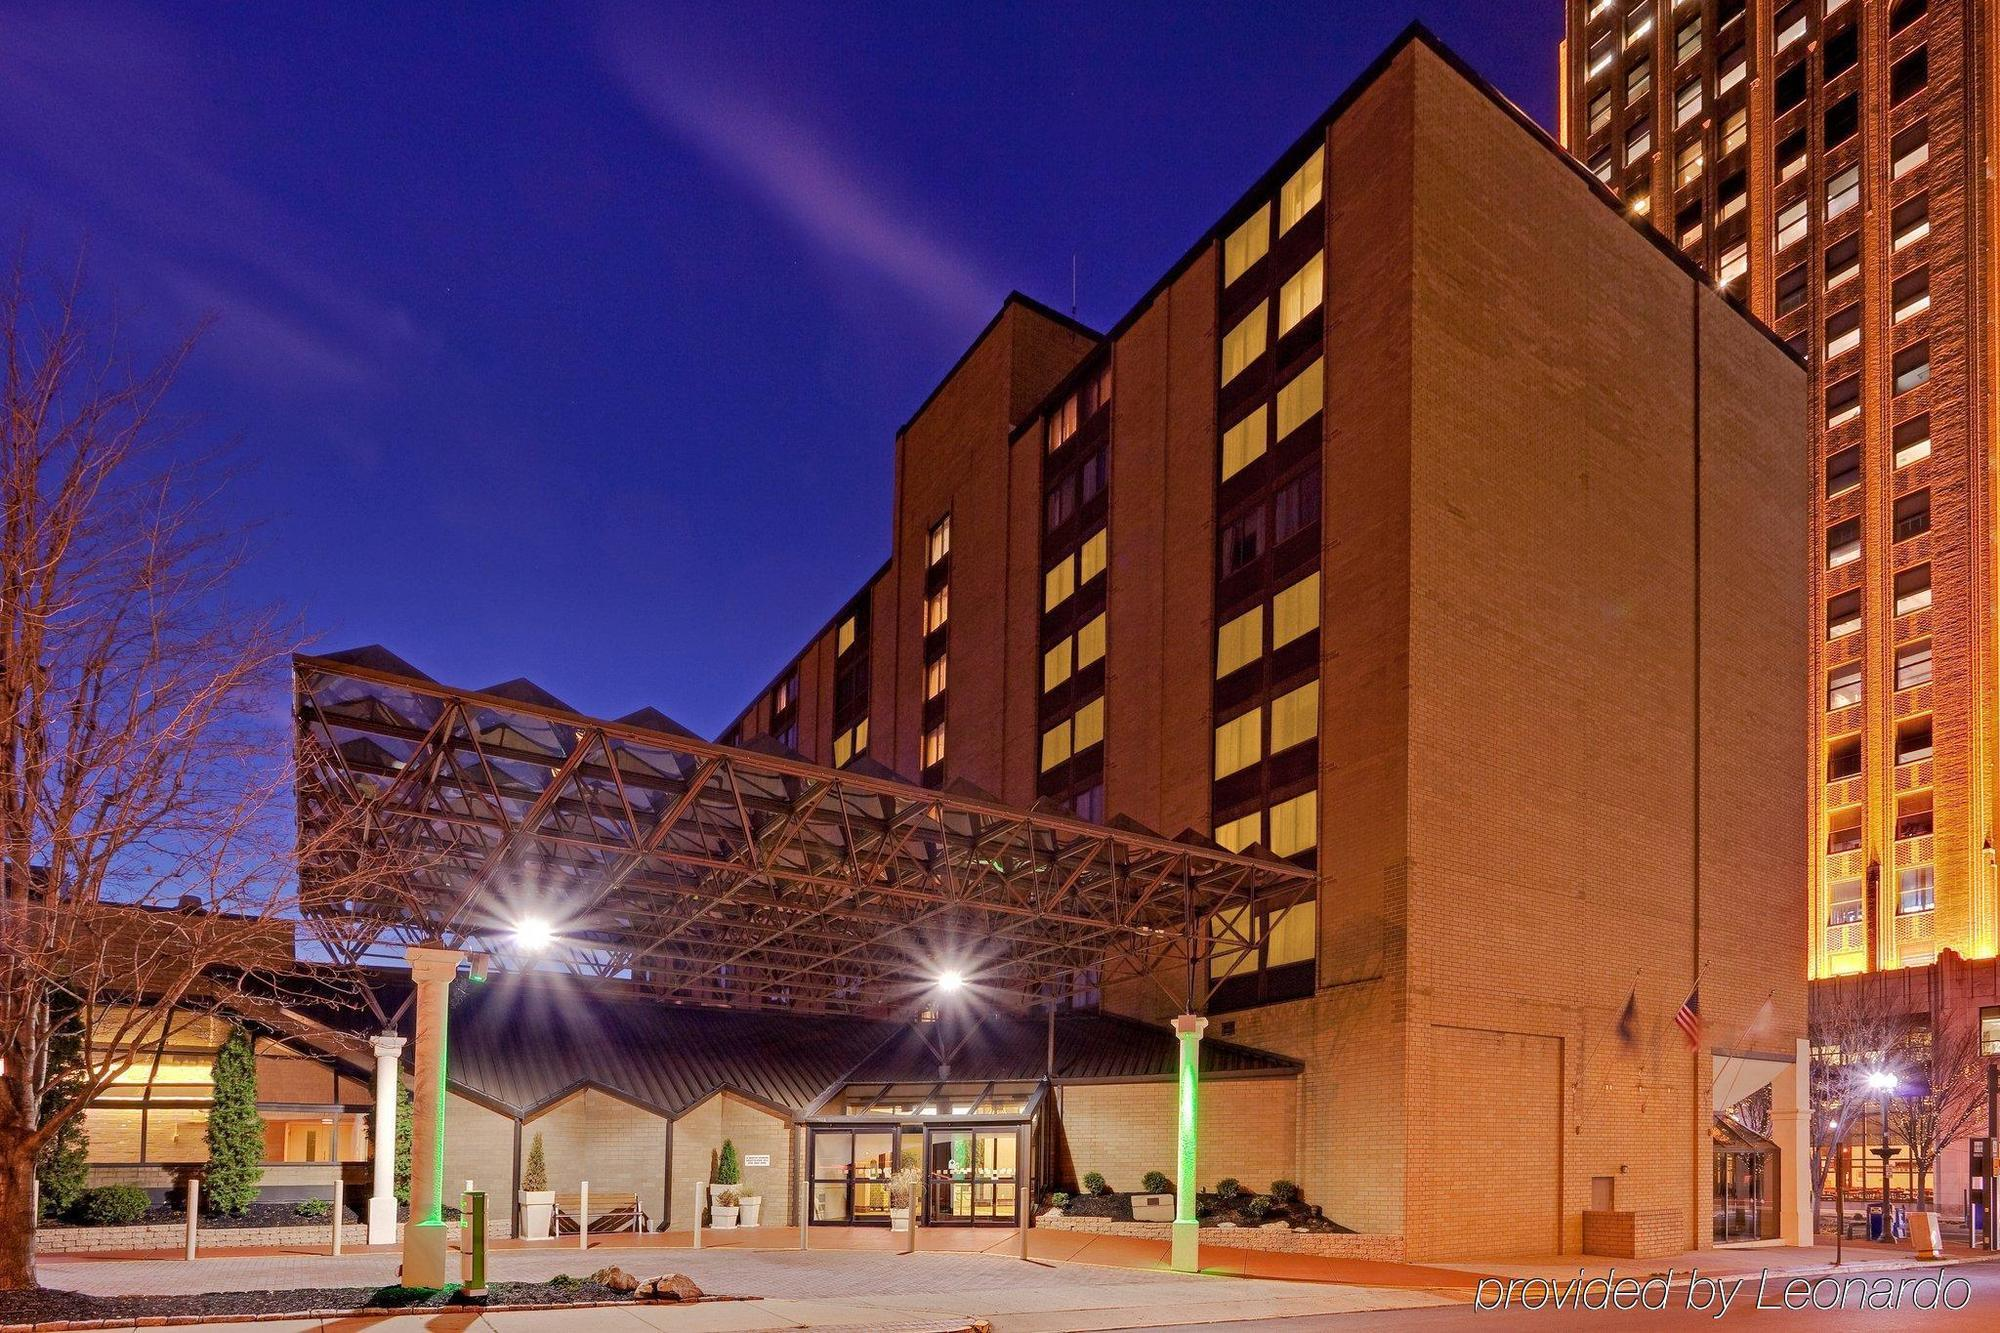 HOLIDAY INN ALLENTOWN CENTER CITY, ALLENTOWN ***